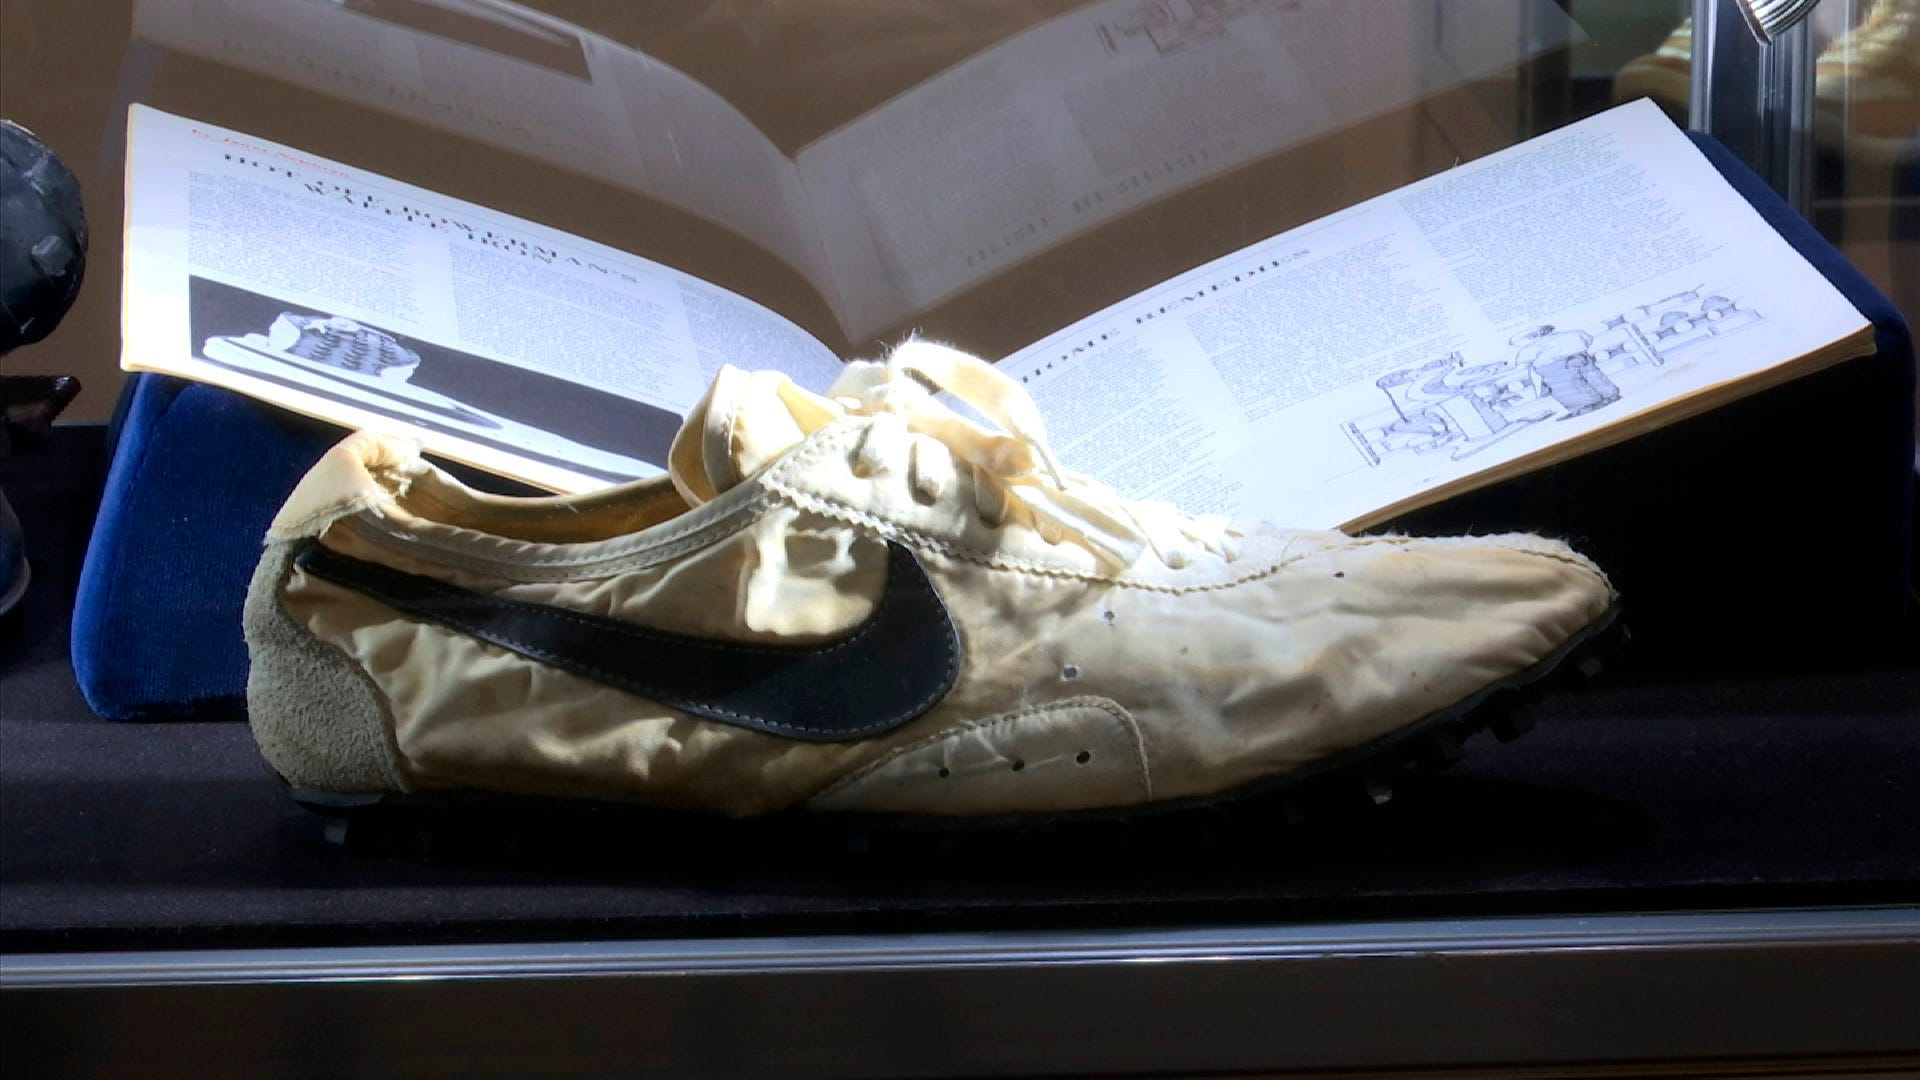 Nike 'moon shoes' from 1972 Olympic trials sell for $50K